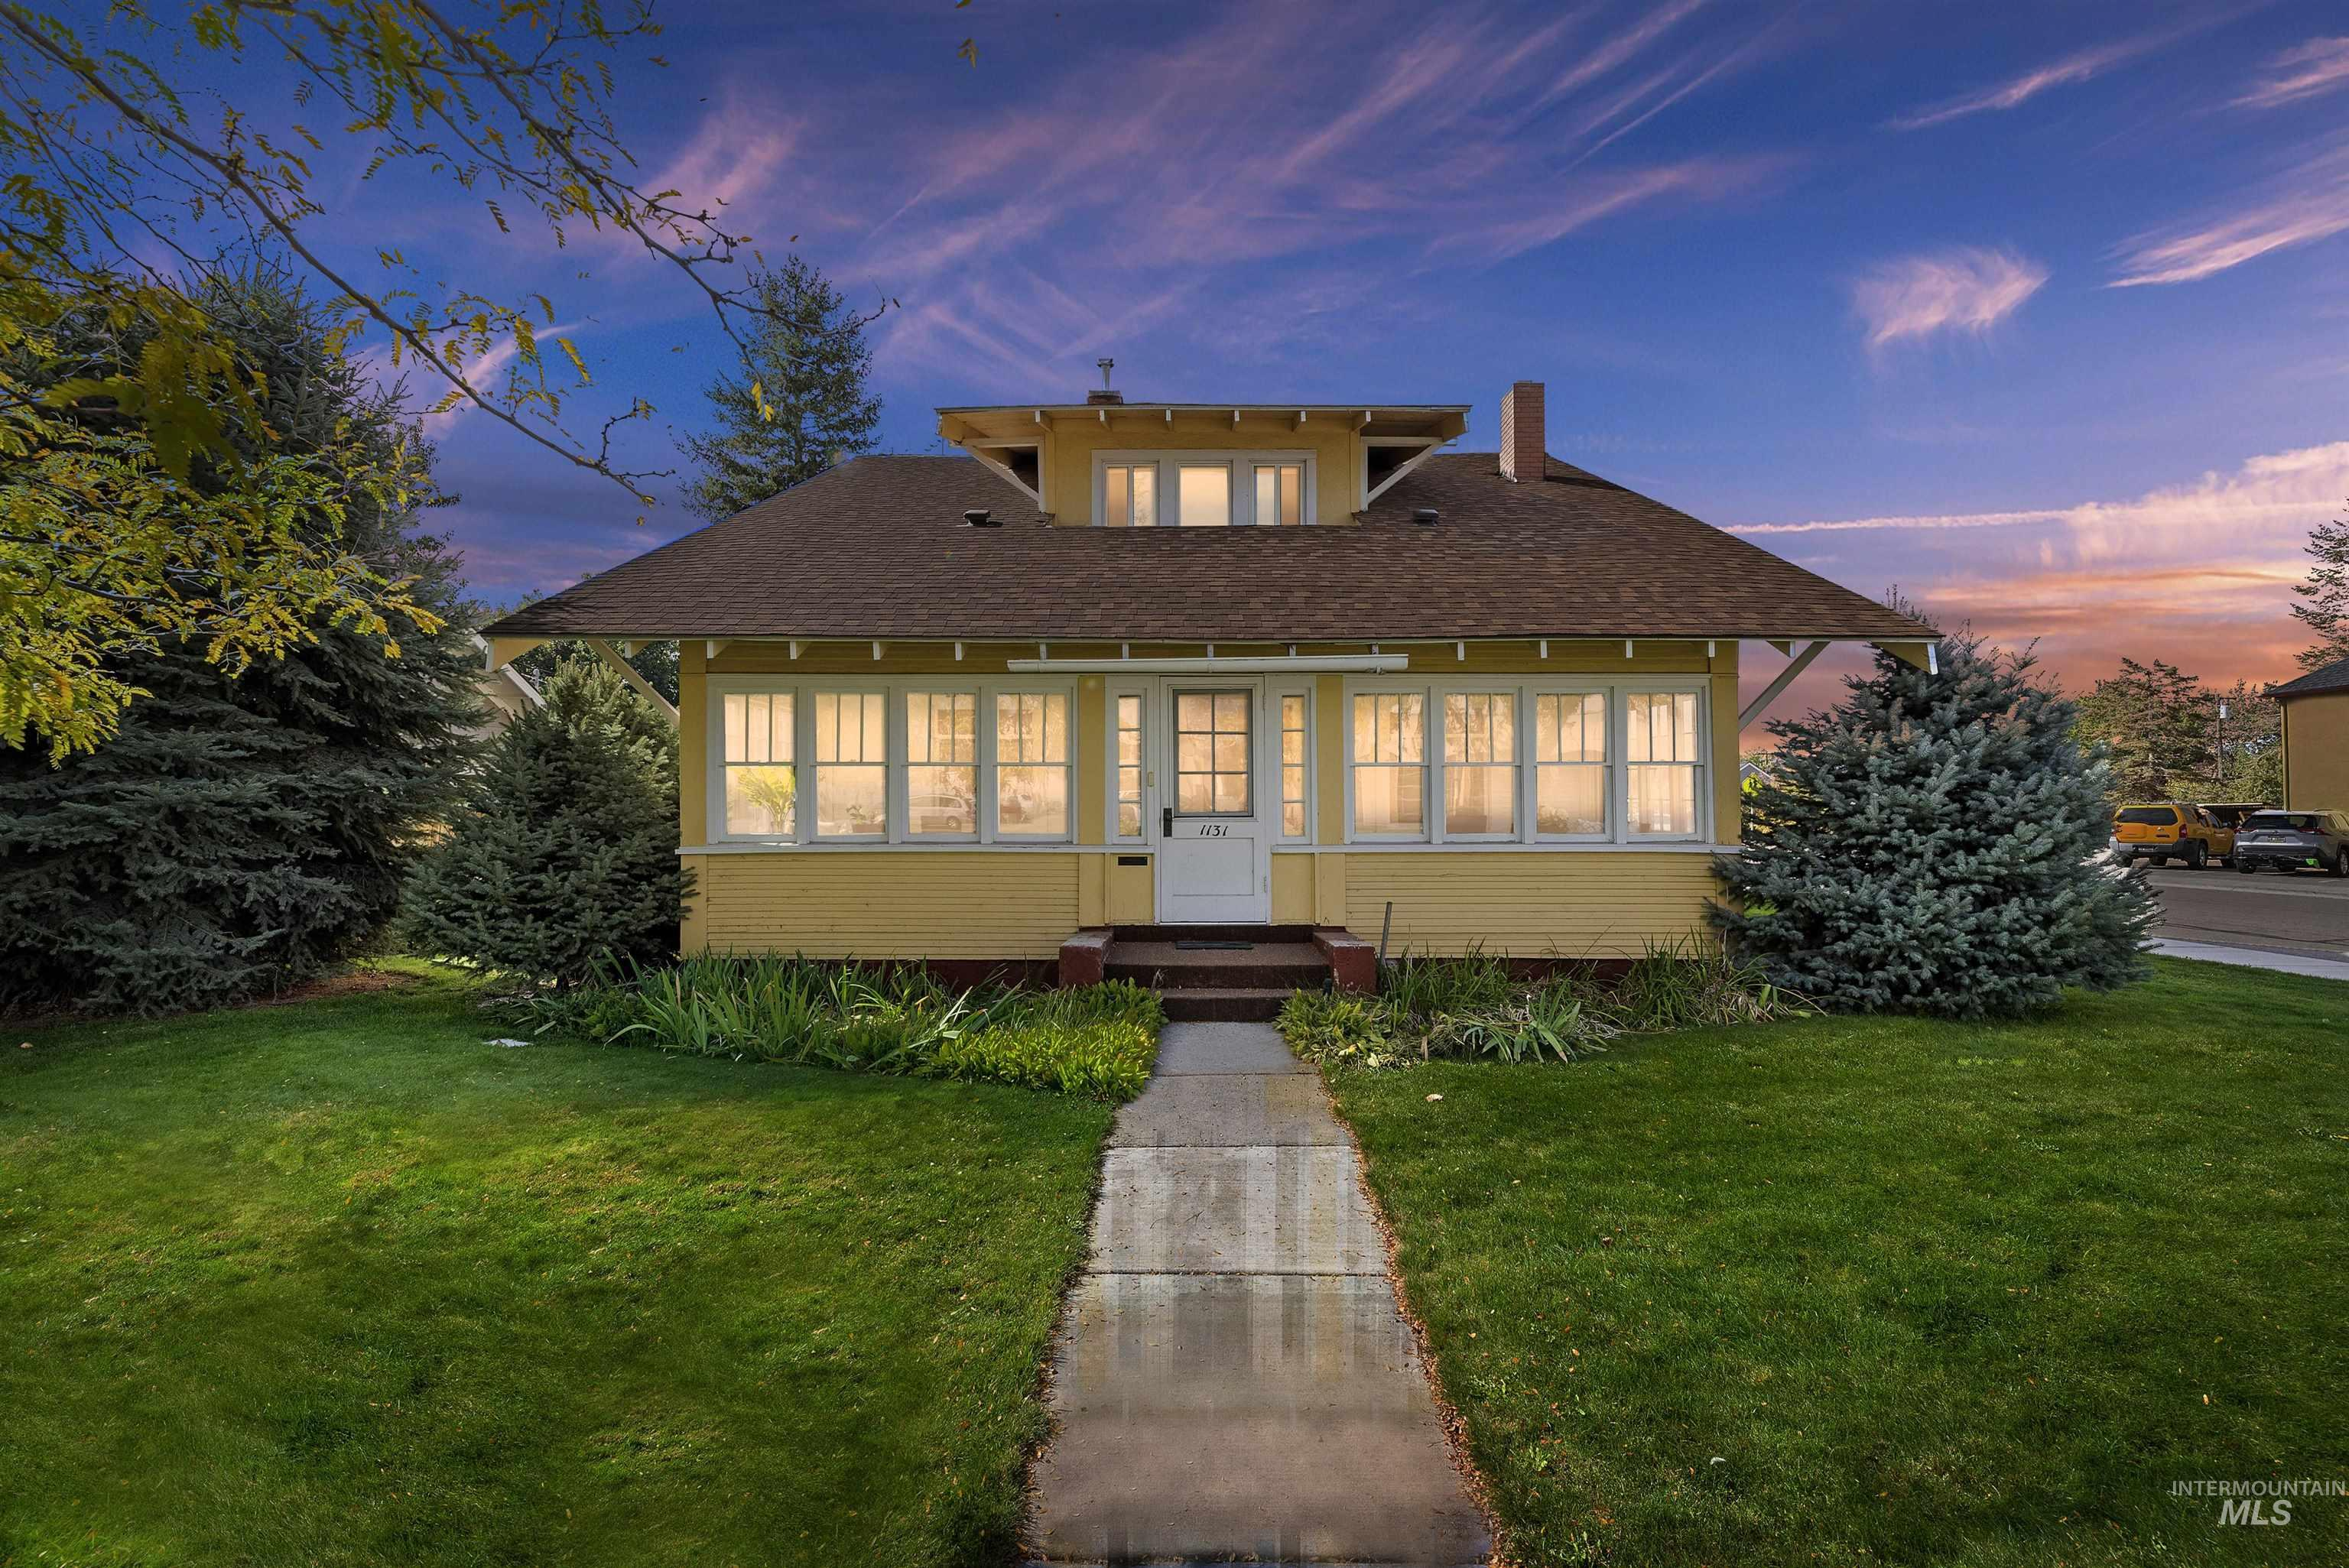 The heart of Meridian offers this timeless, charming and authentic Craftsman home. Rare treasure with beautiful 1920's millwork, built in book cases with glass doors, glass sliding pocket doors between the living room and the dining room, where many cherished memories have been made.  Quaint eating nook in kitchen with table and benches.Amazing 300 sq ft enclosed sun porch surrounded by windows creates a wonderful place to welcome family and friends.  1182 sq ft partially basement is open for your imagination.  Most of the neighboring homes have been approved for small businesses. Upstairs includes a bathroom and 3 additional bedrooms.  This 100 year old home has had only 2 owners and has always been owner occupied.  A century of love has gone into this home.  Stroll to Cafe's, grocery stories, schools, and everything that the darling downtown Meridian has to offer.  Bring your imagination and make this a place for you to grow fond memories. In home office? Small business?  Endless possibilities. R-15 z - Shirley Sterner, Main: 208-494-4008, Silvercreek Realty Group, Main: 208-377-0422,